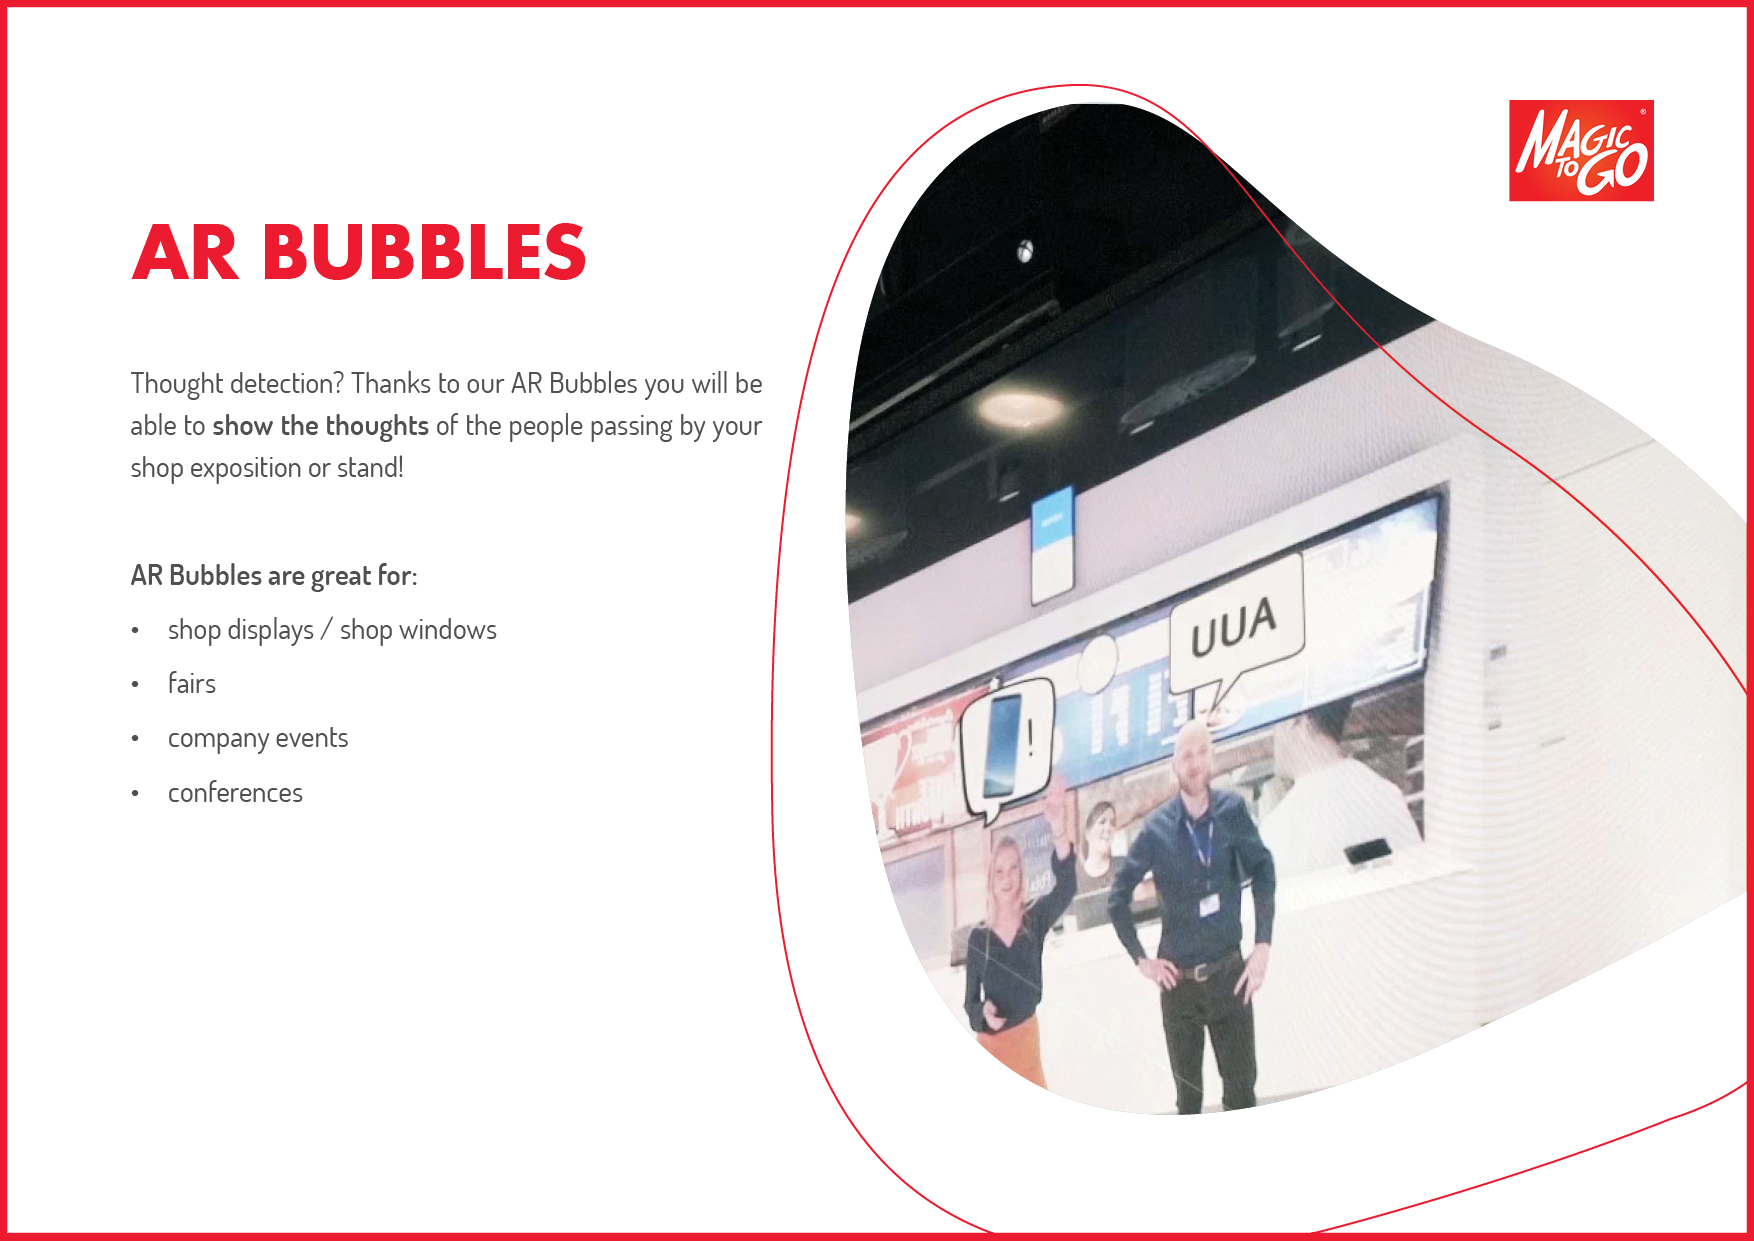 Magic2go_AR_BUBBLES2